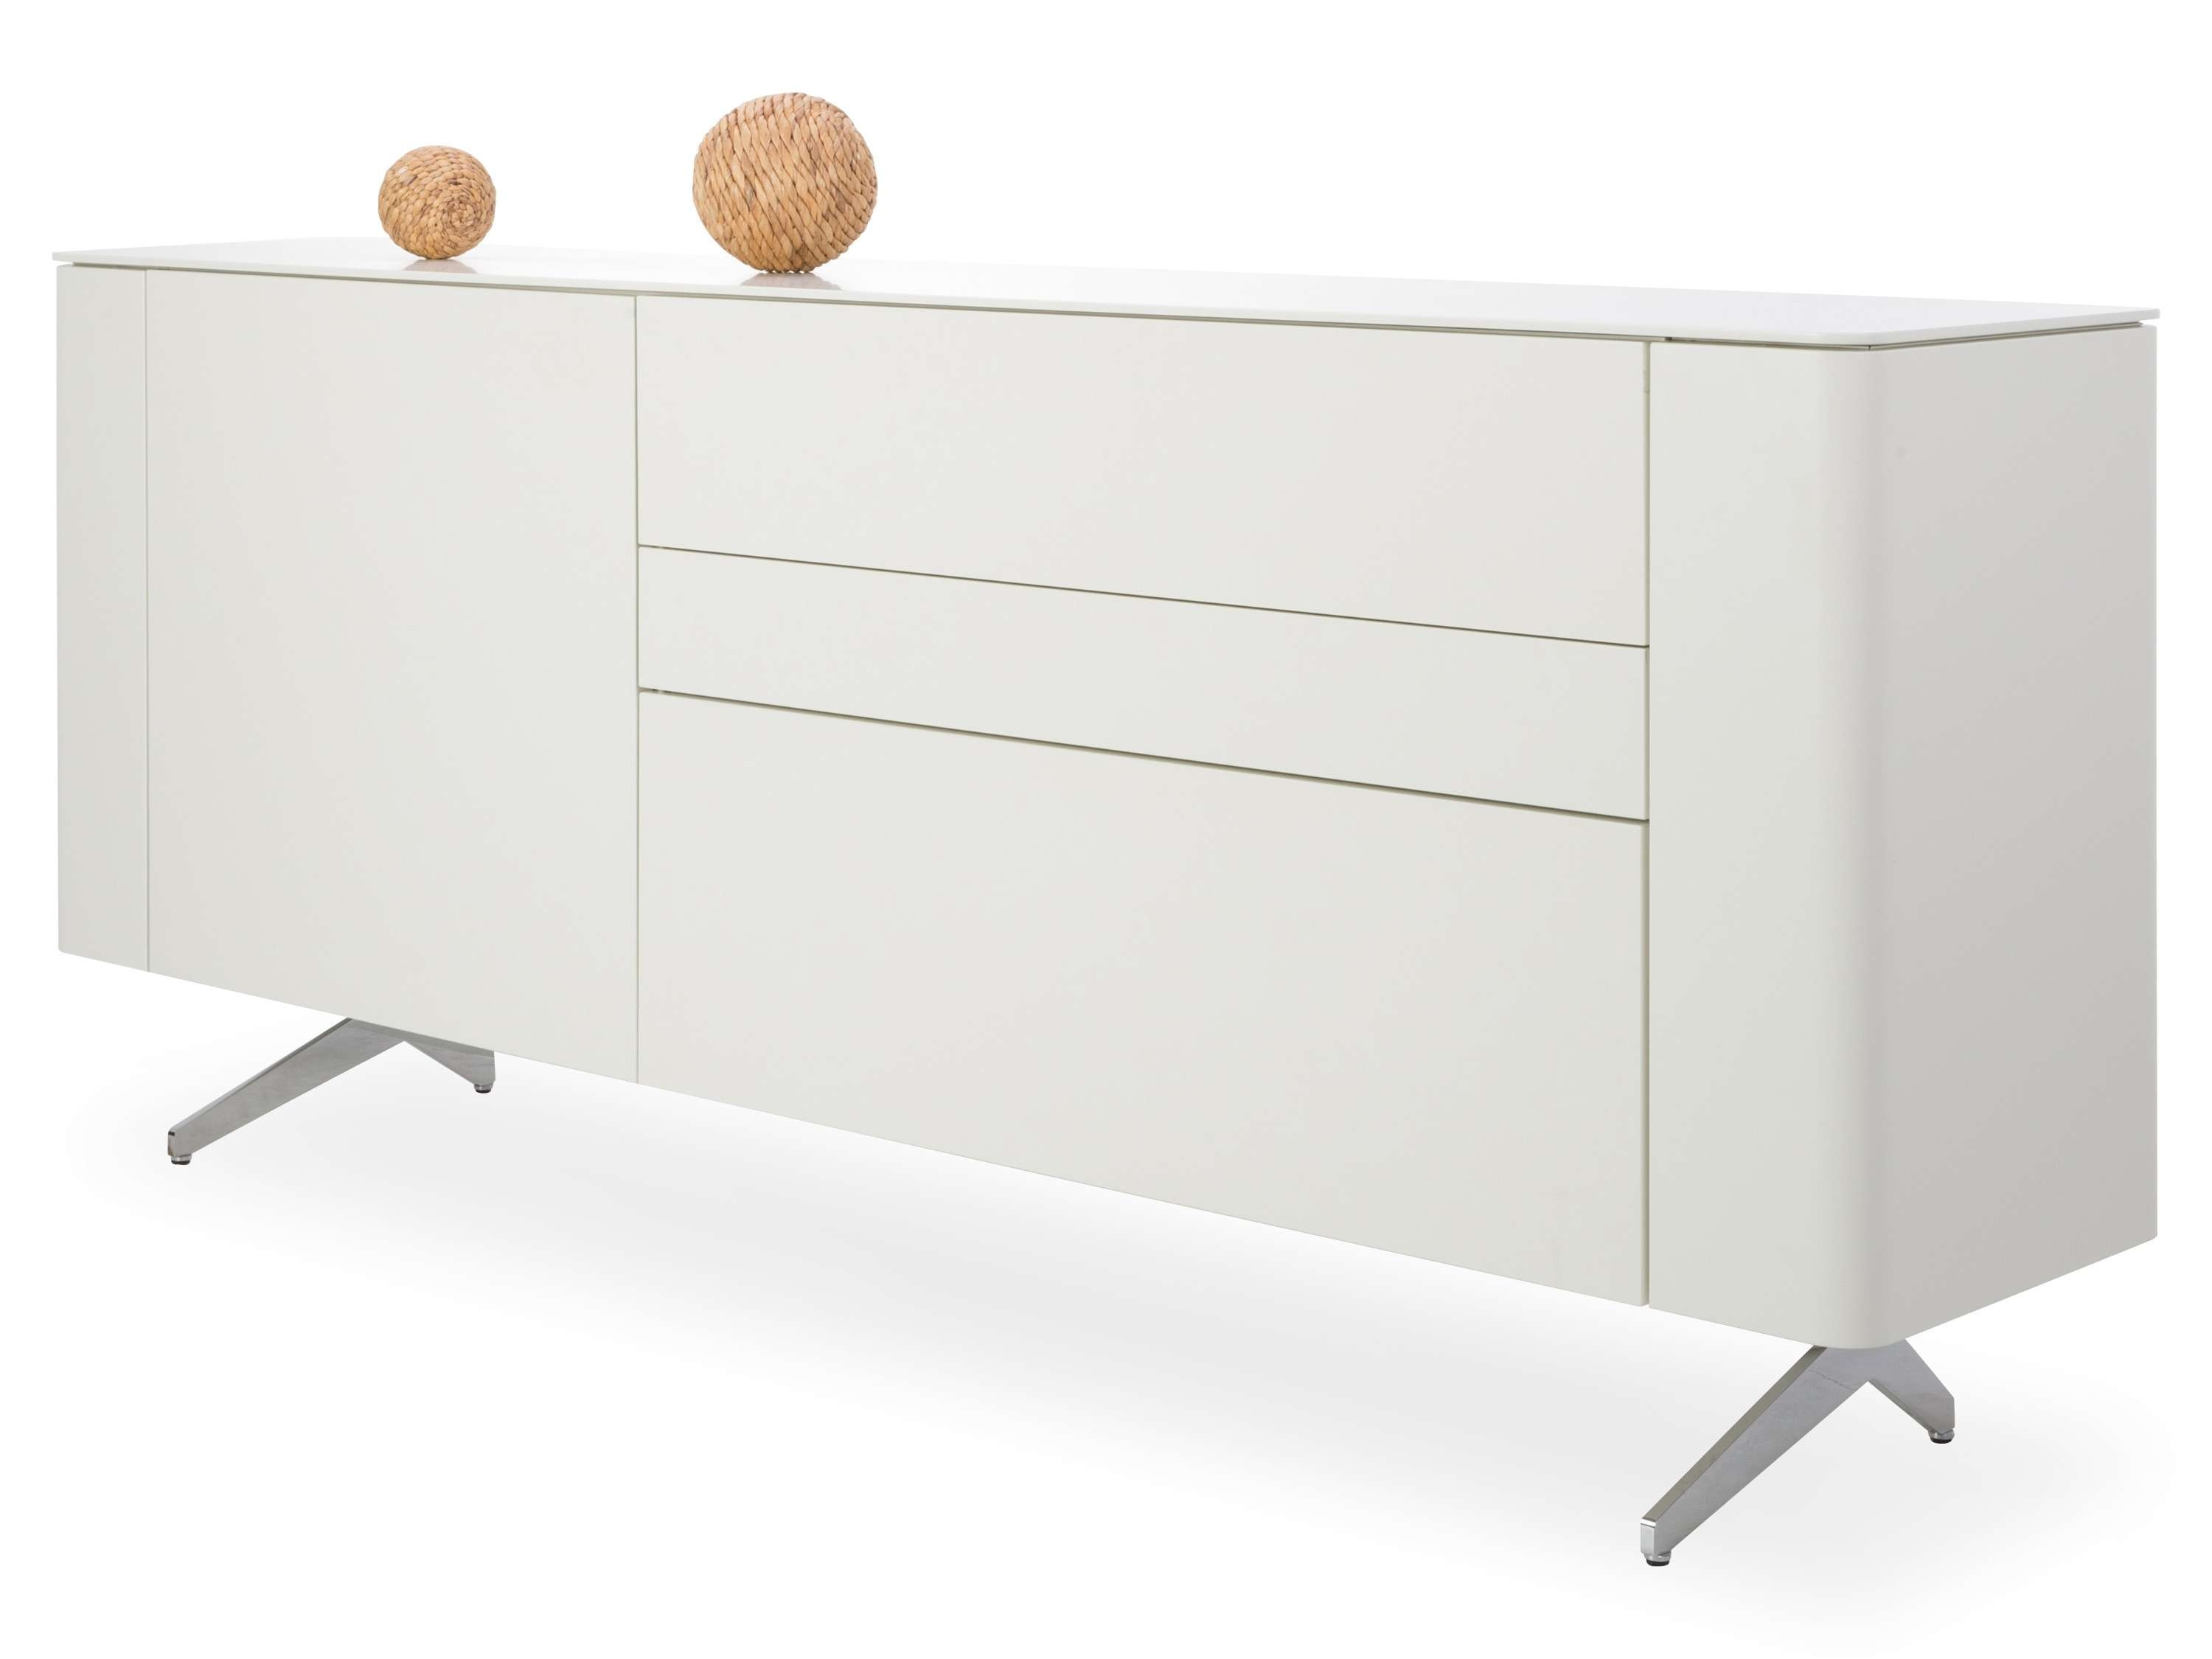 Sideboard H?lsta Gentis In Wei? Von H?lsta Und Esszimmer G?nstig For Joop Sideboards (View 18 of 20)